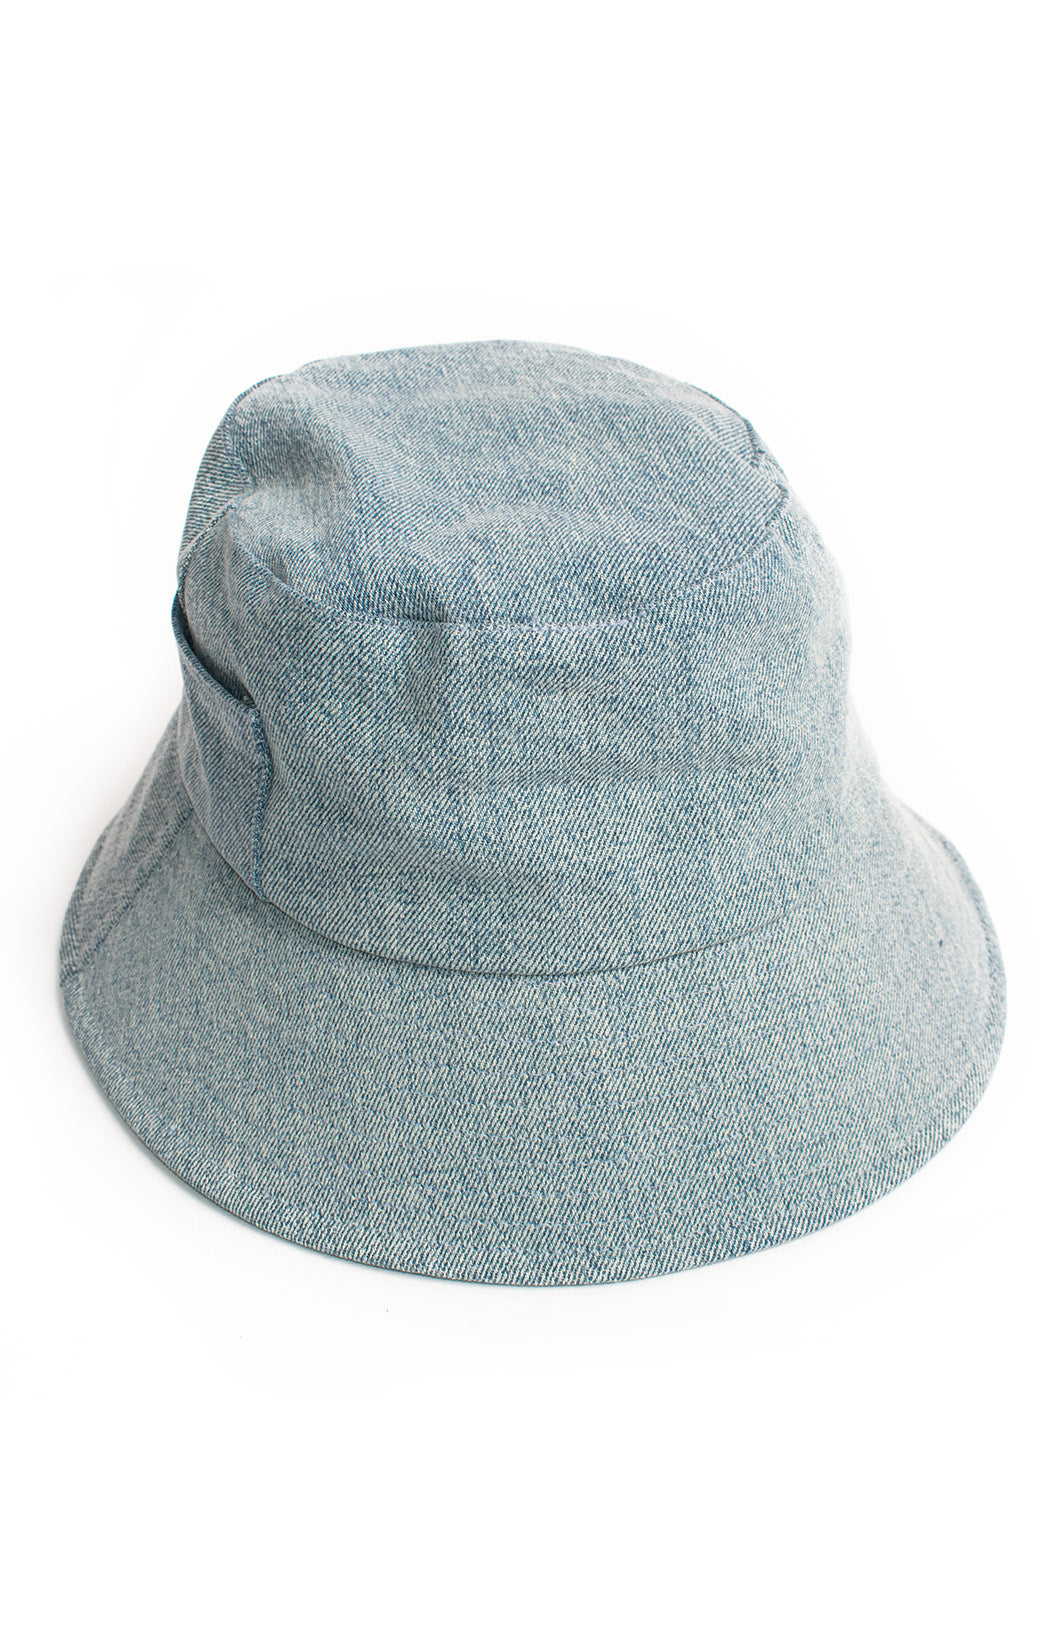 Front view of LACK OF COLOR x BOYISH with tags Bucket hat Size: S/M